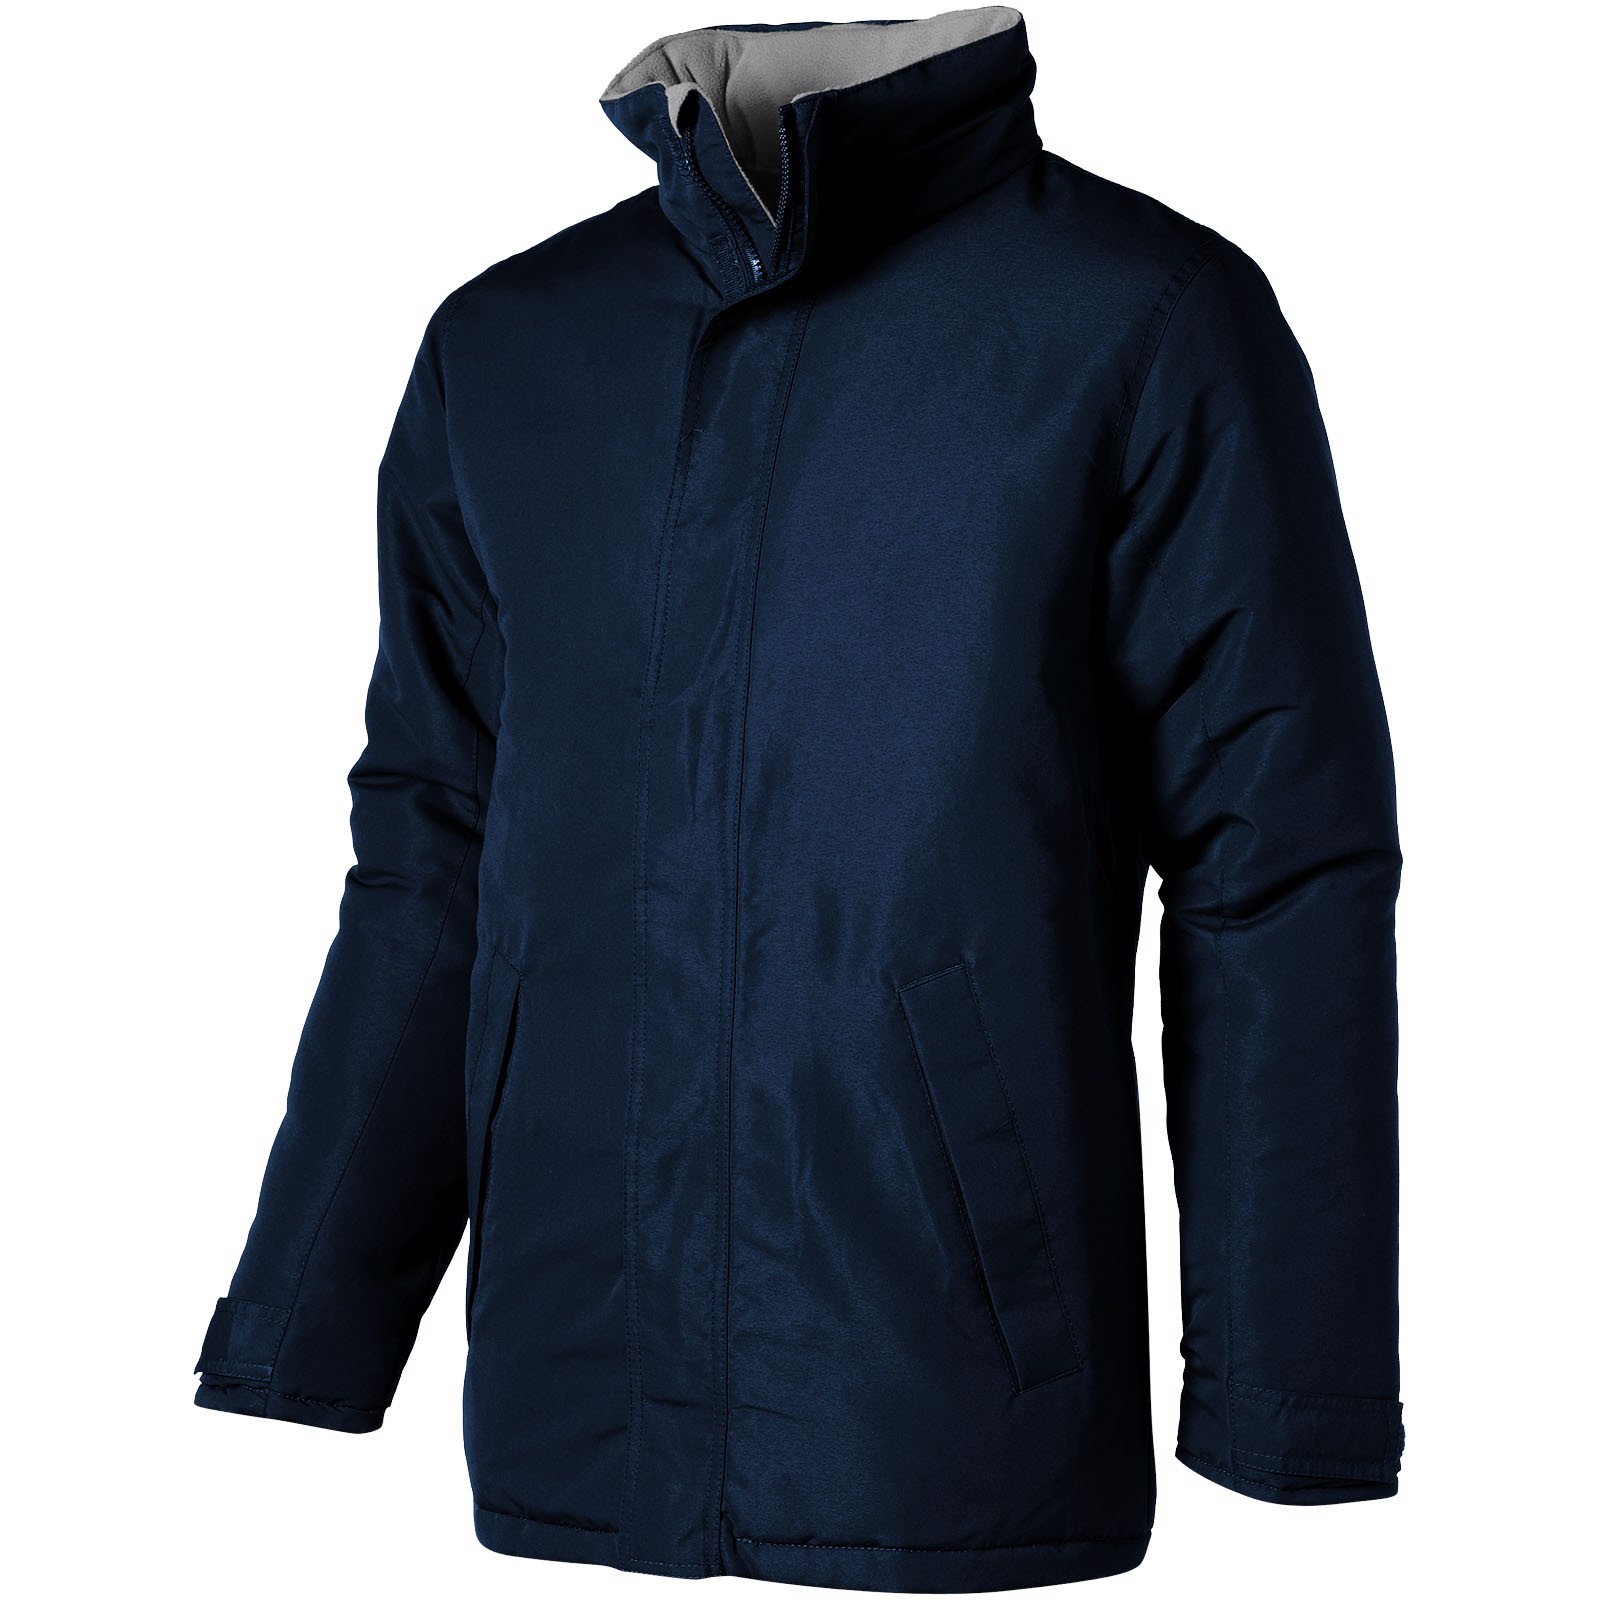 Under Spin insulated jacket - Navy / 3XL